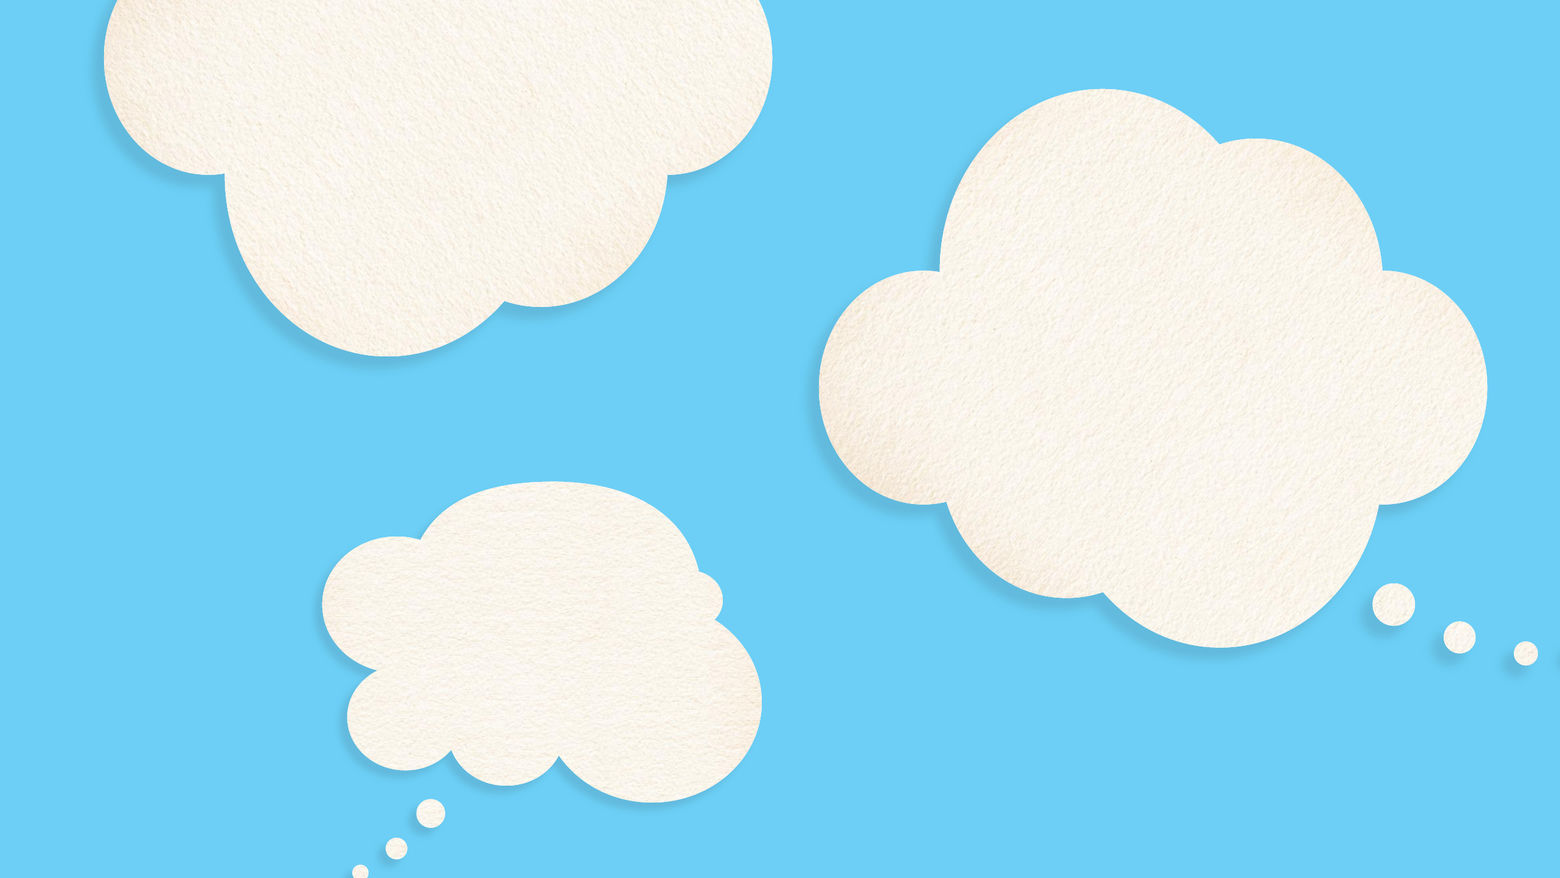 Three white thought bubble clouds on a sky blue background